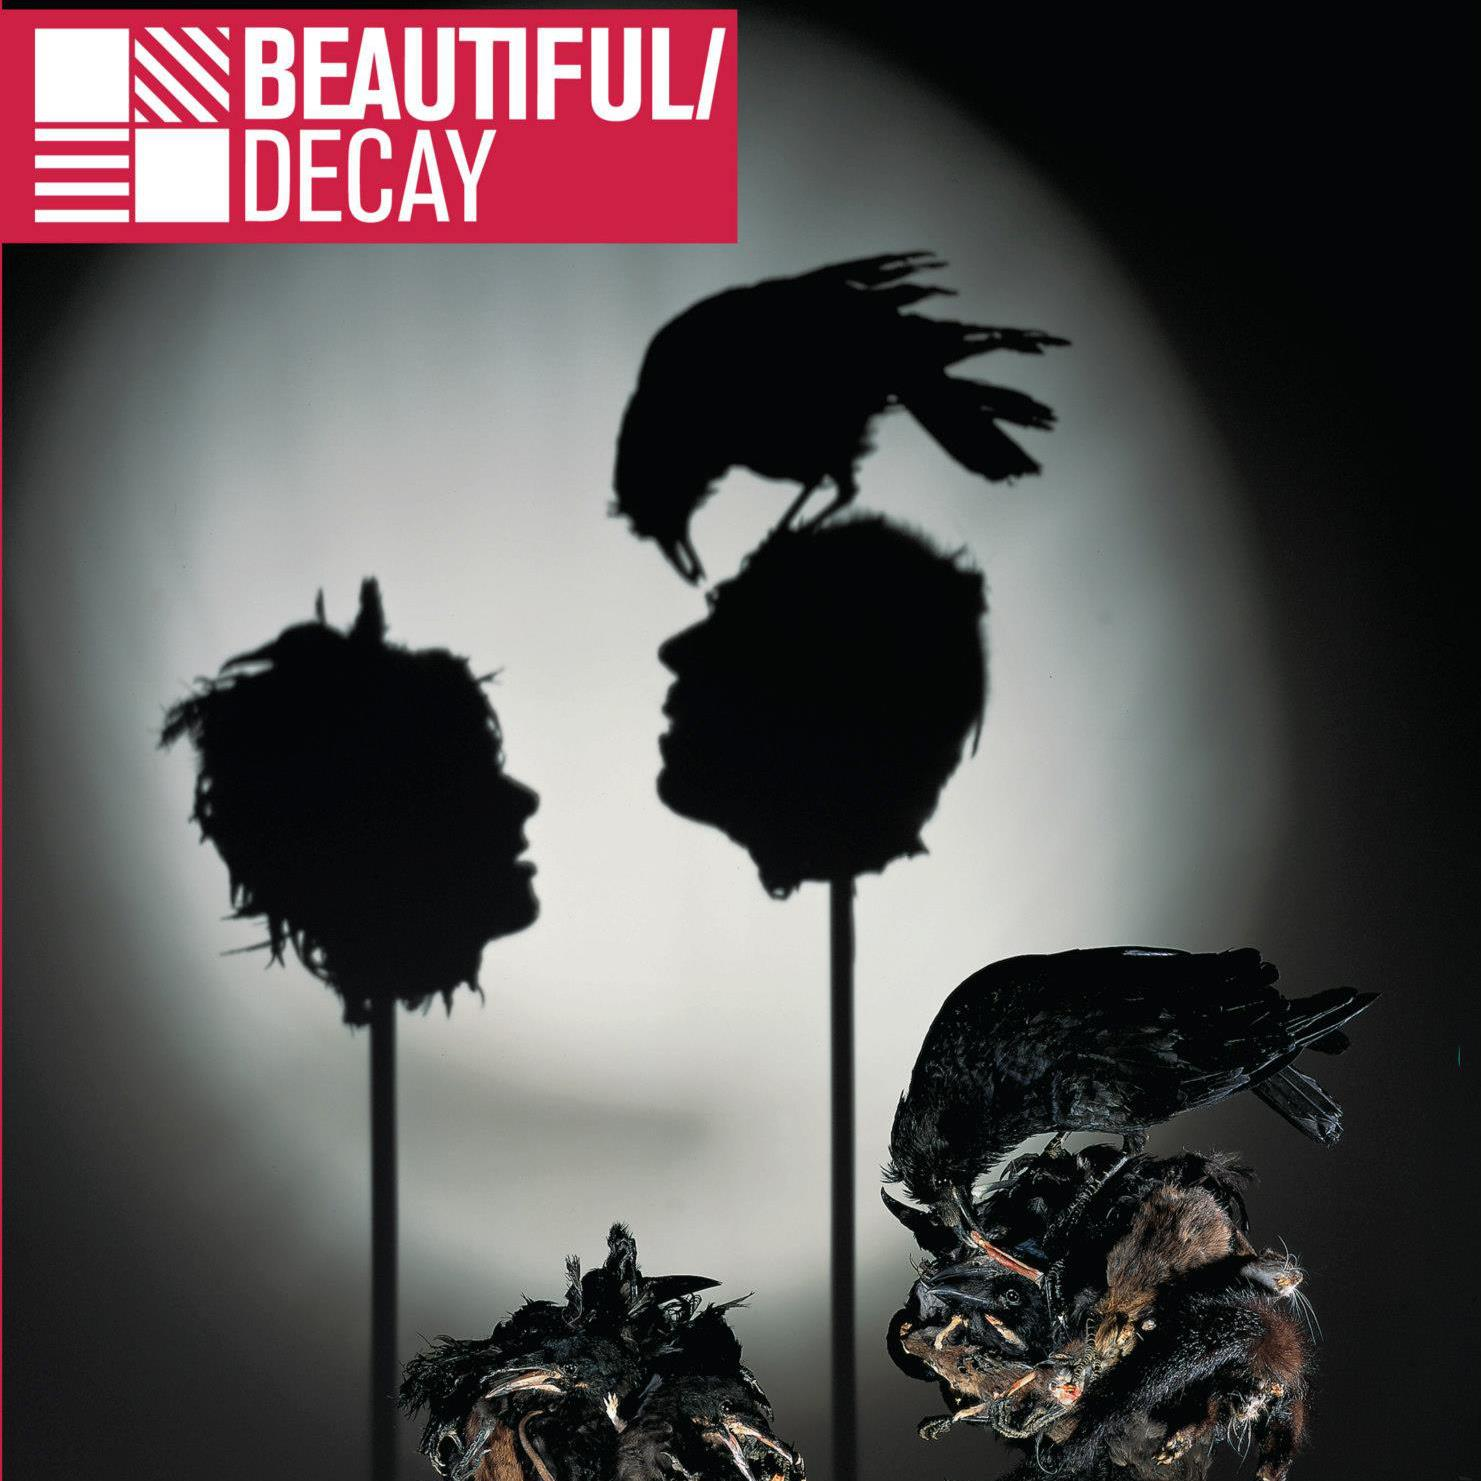 Beautiful/Decay Magazine, June 15, 2015